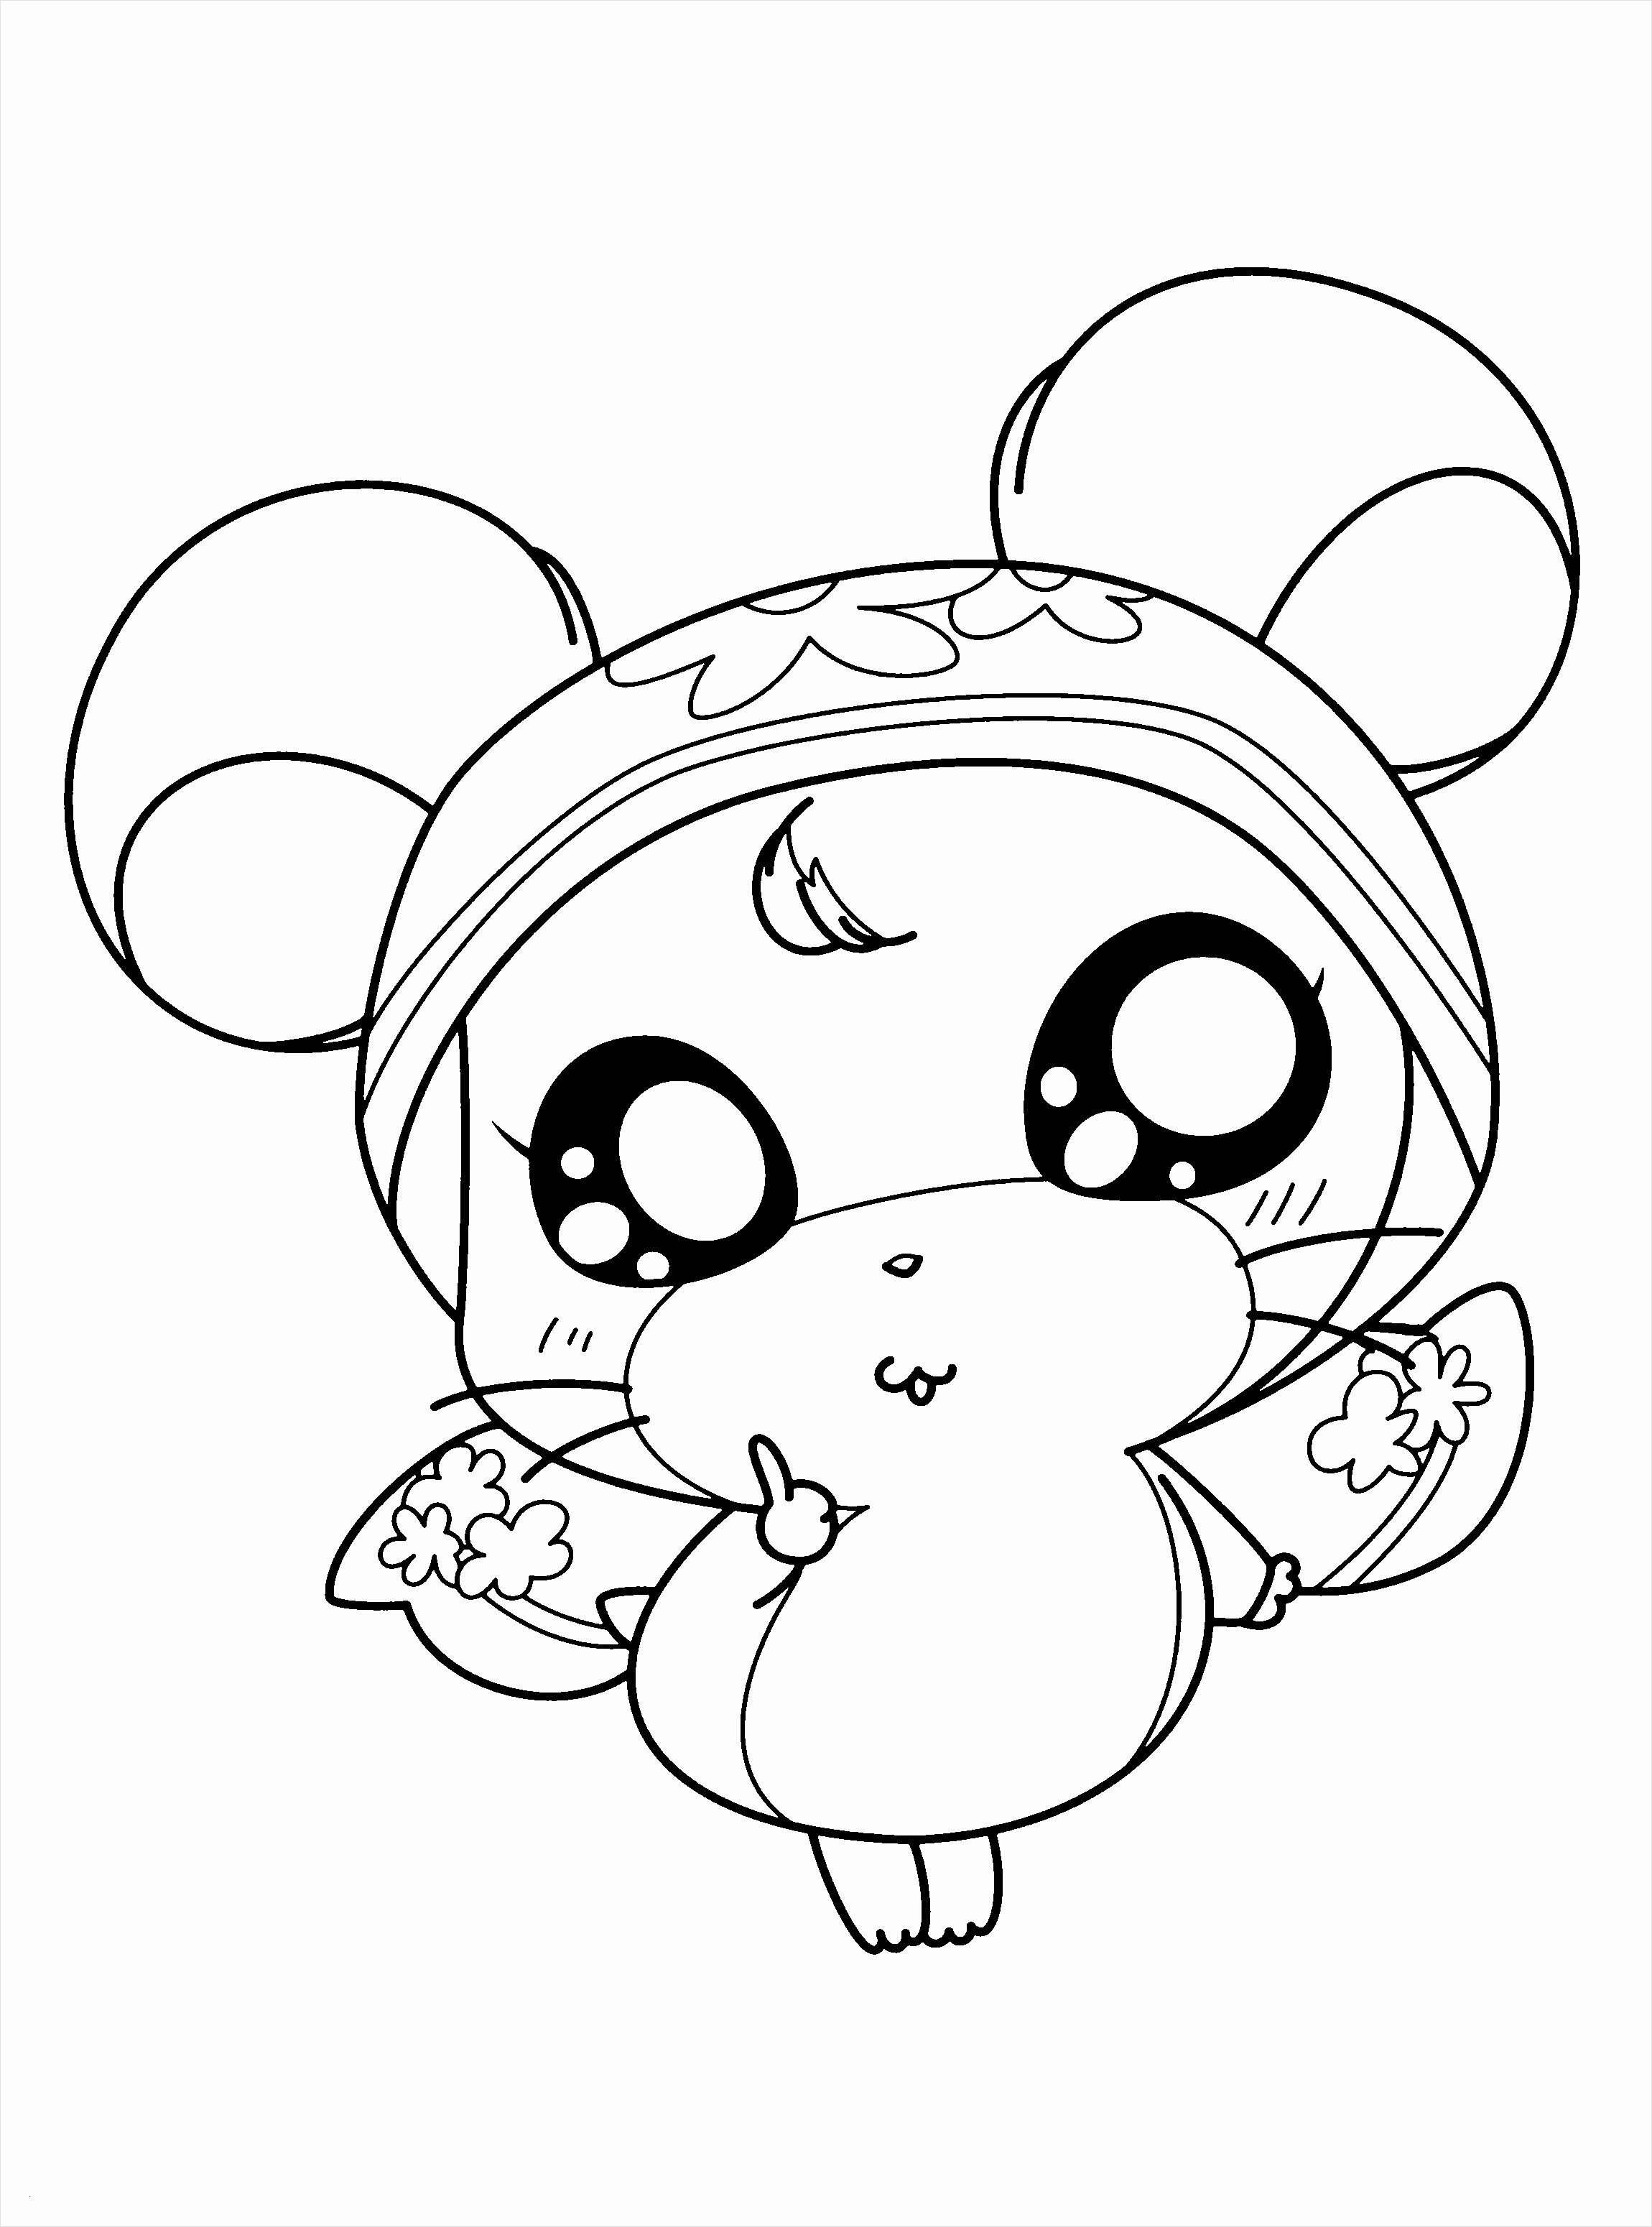 shopping coloring pages Download-Littlest Petshop Coloring Pages Littlest Pet Shop Coloring Pages attractive Best Home Coloring Pages 18-f